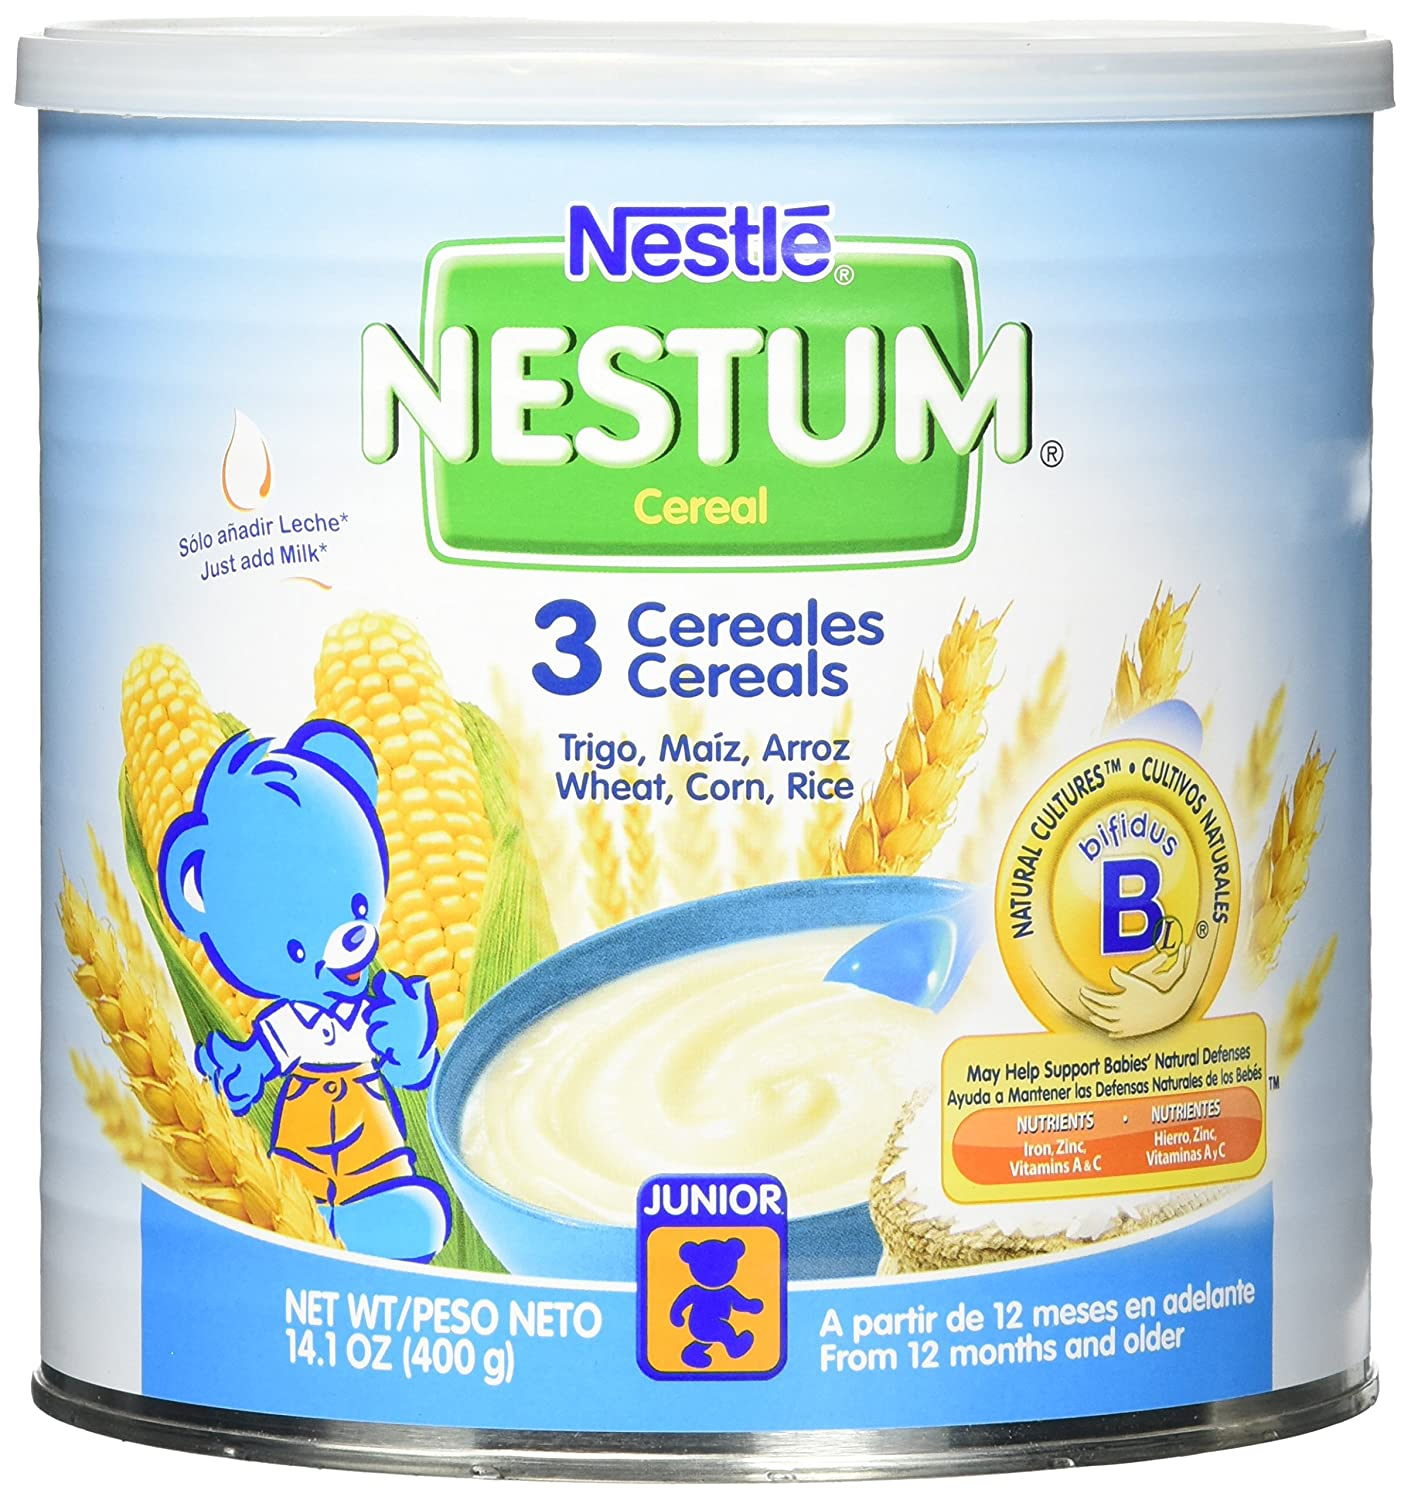 Amazon.com: Gerber Baby Cereal Nestle Nestum 3 Cereals, 14.1 Ounce: Prime Pantry